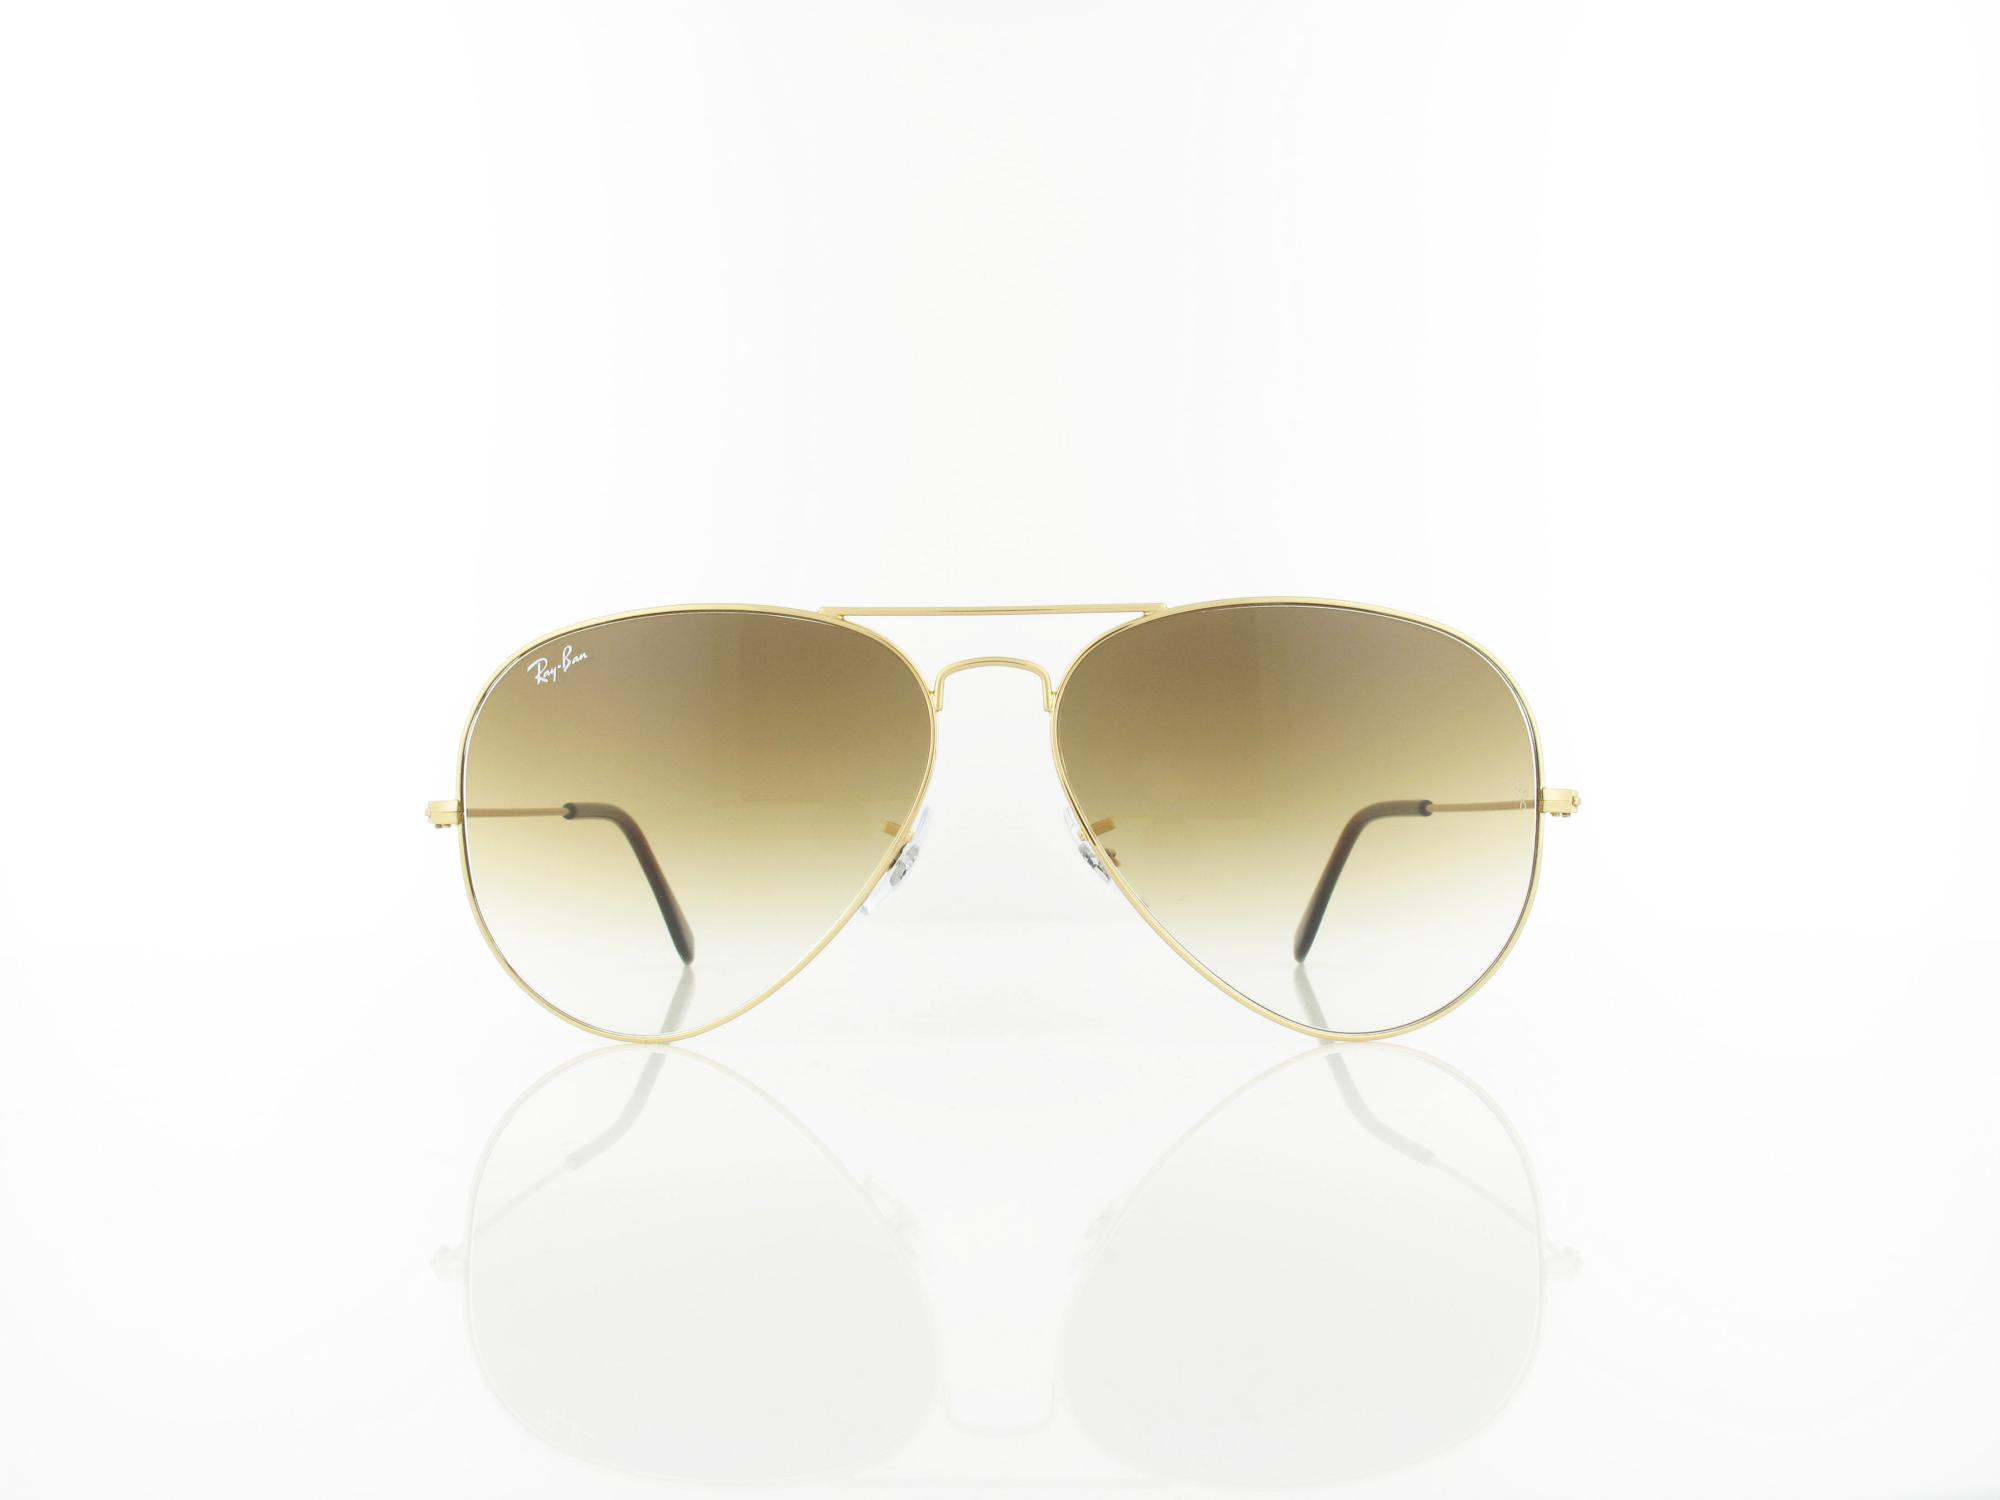 Ray Ban | Aviator Large Metal RB3025 001/51 62 | arista / crystal brown gradient